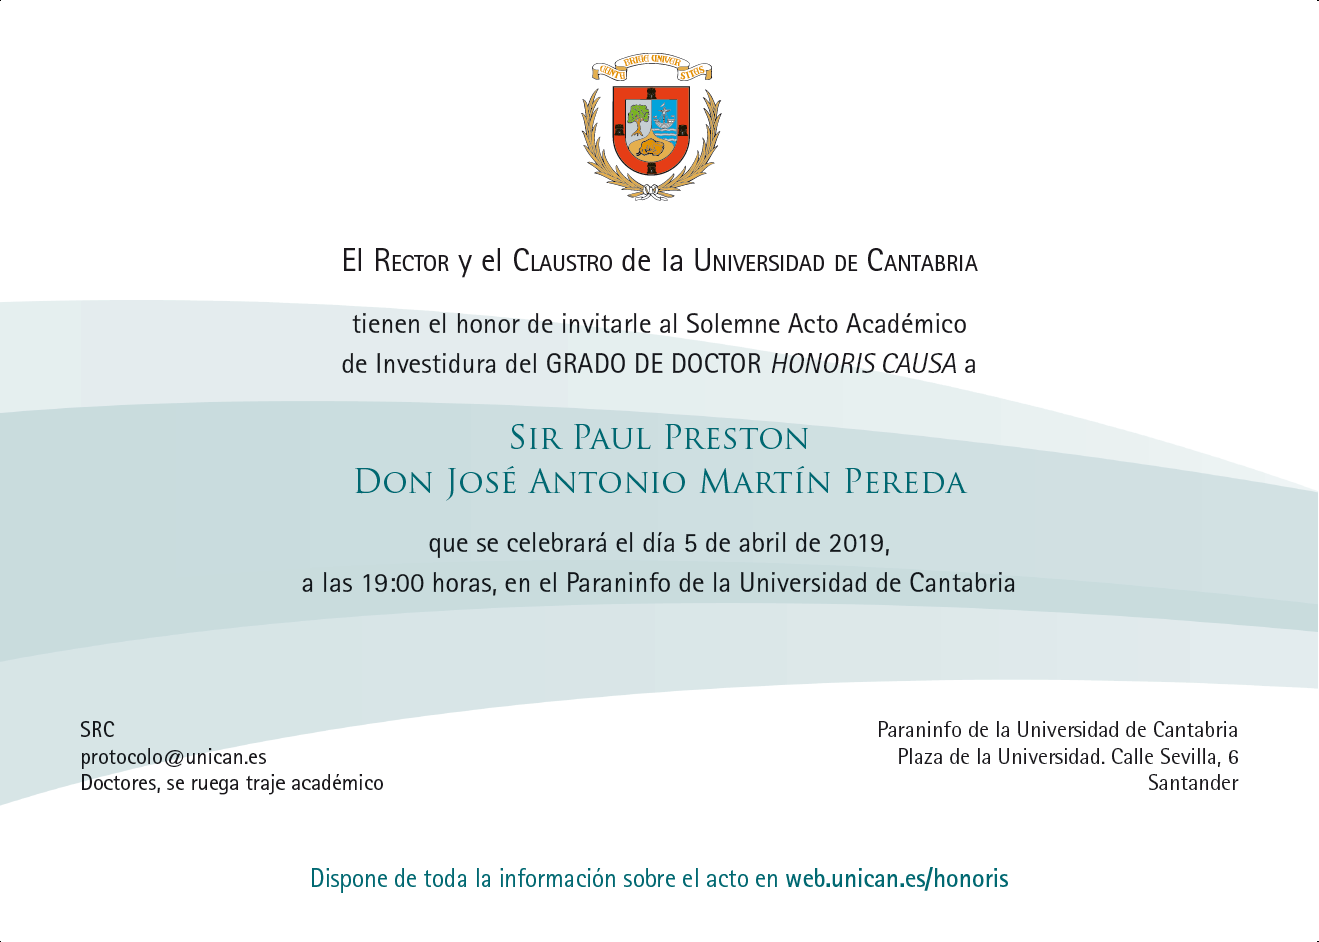 Invitacion DHC SPP y JAMP.png